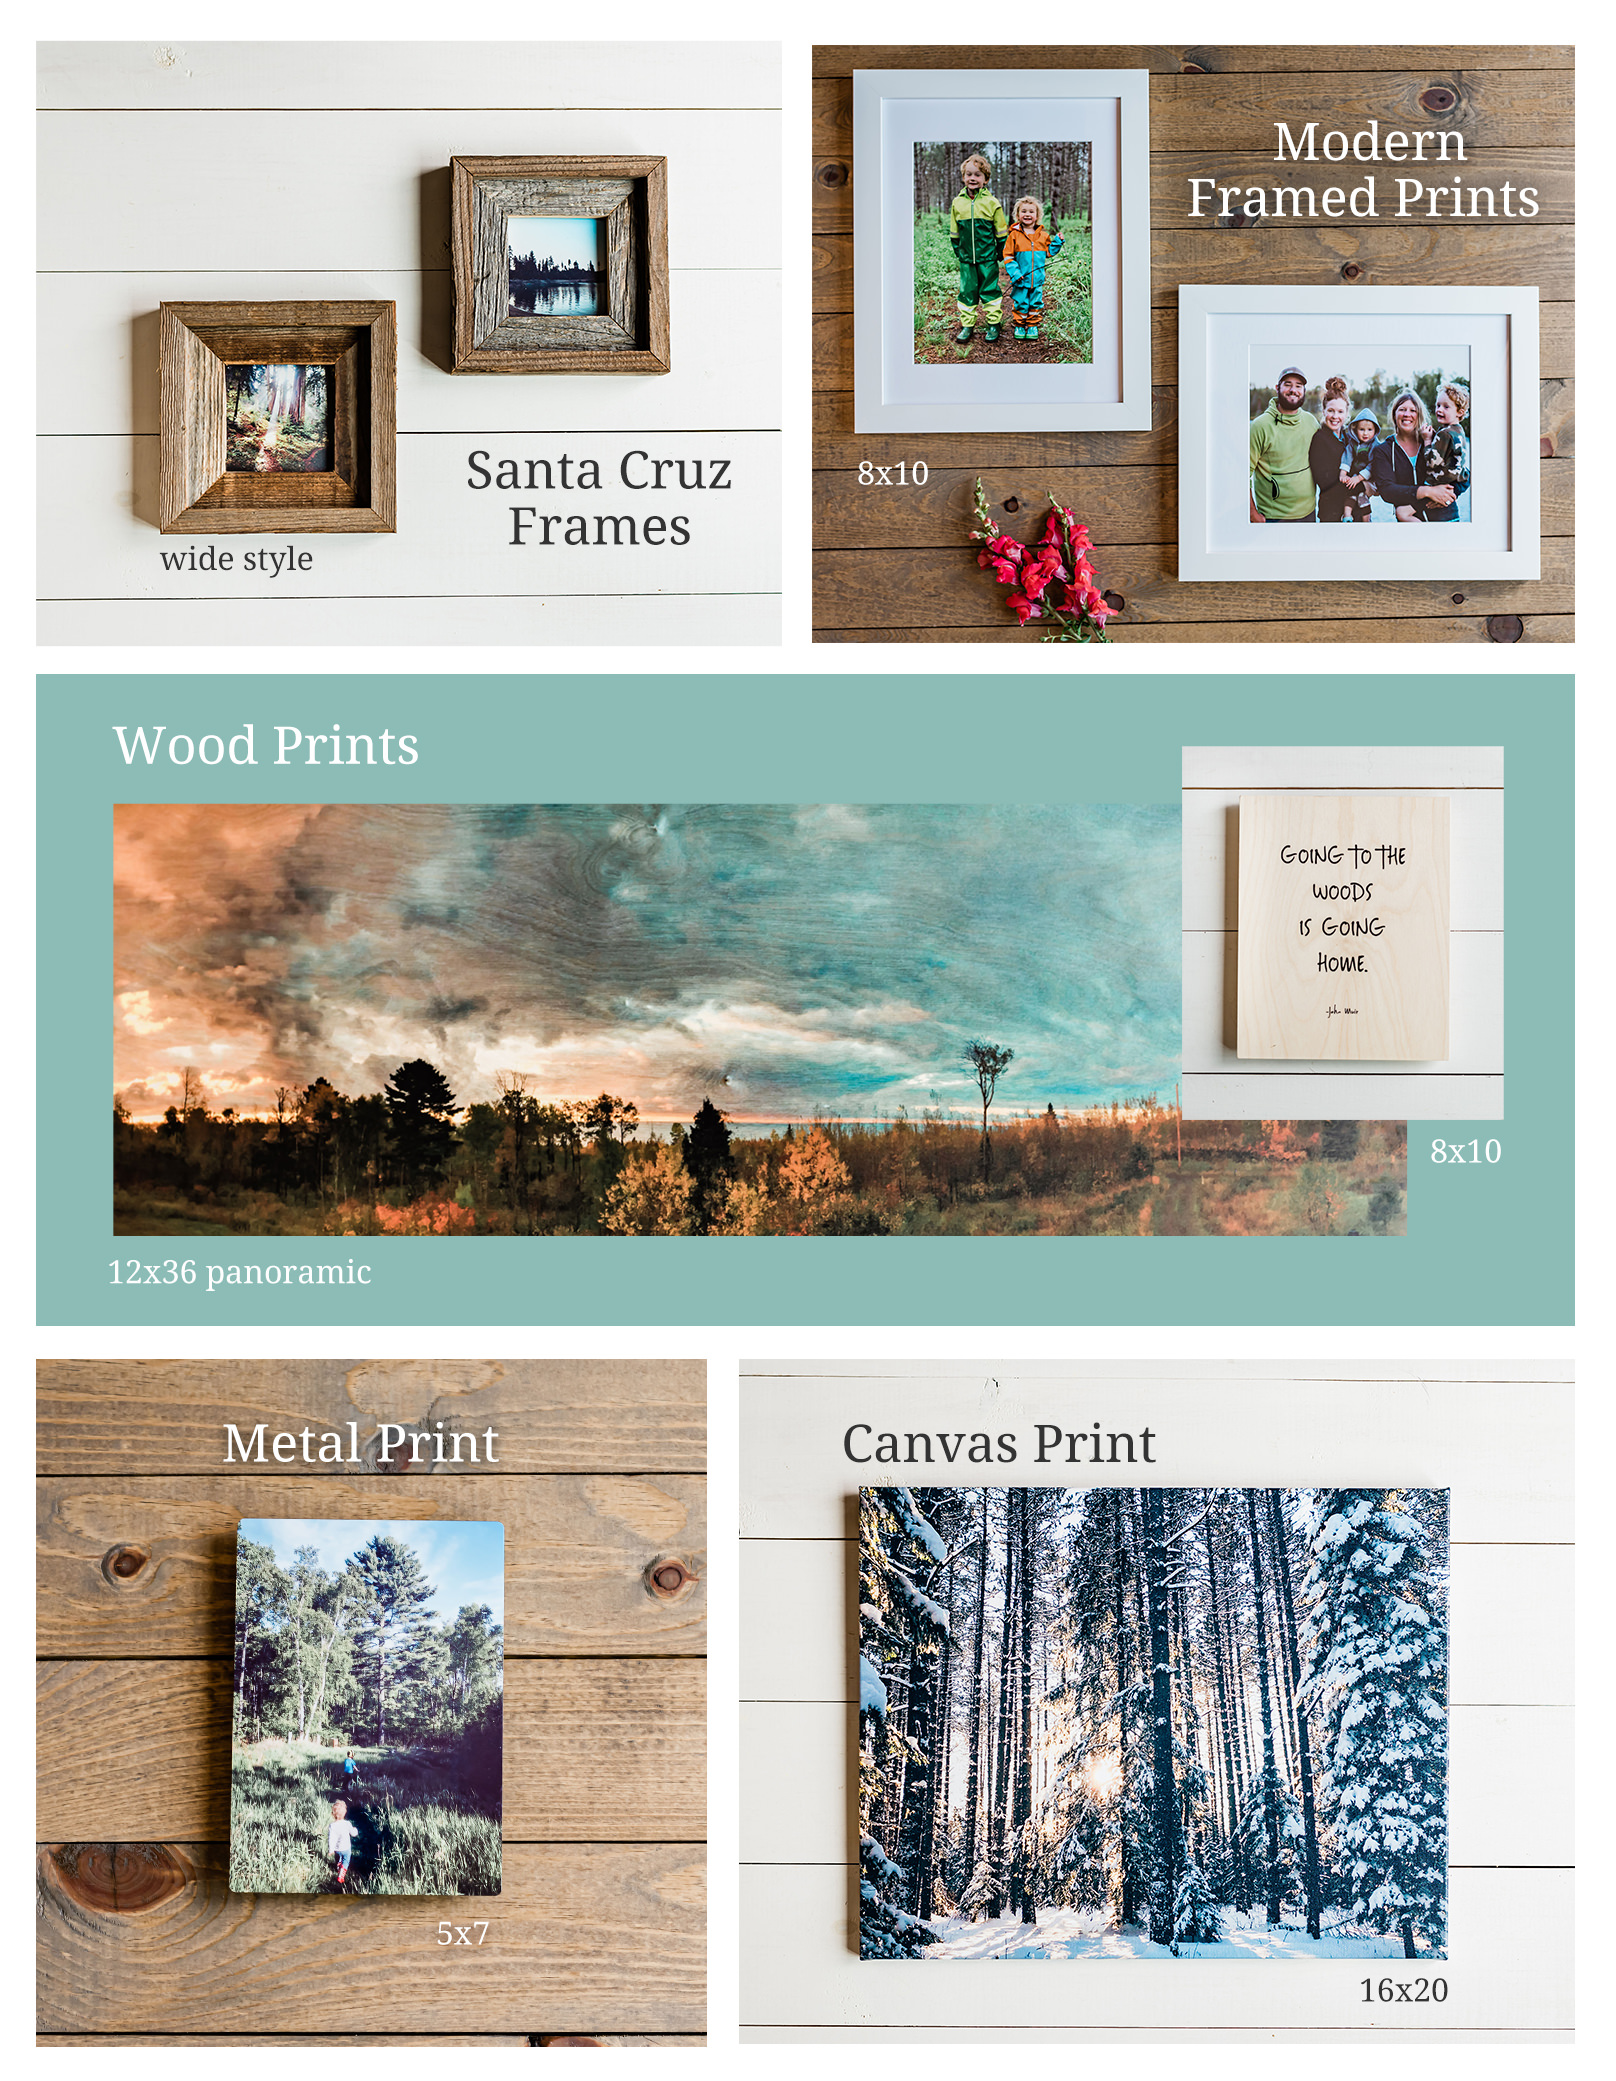 Product Assortment. Framed Prints, Santa Cruz Frames, Metal Prins, Canvas Prints, Wood Prints